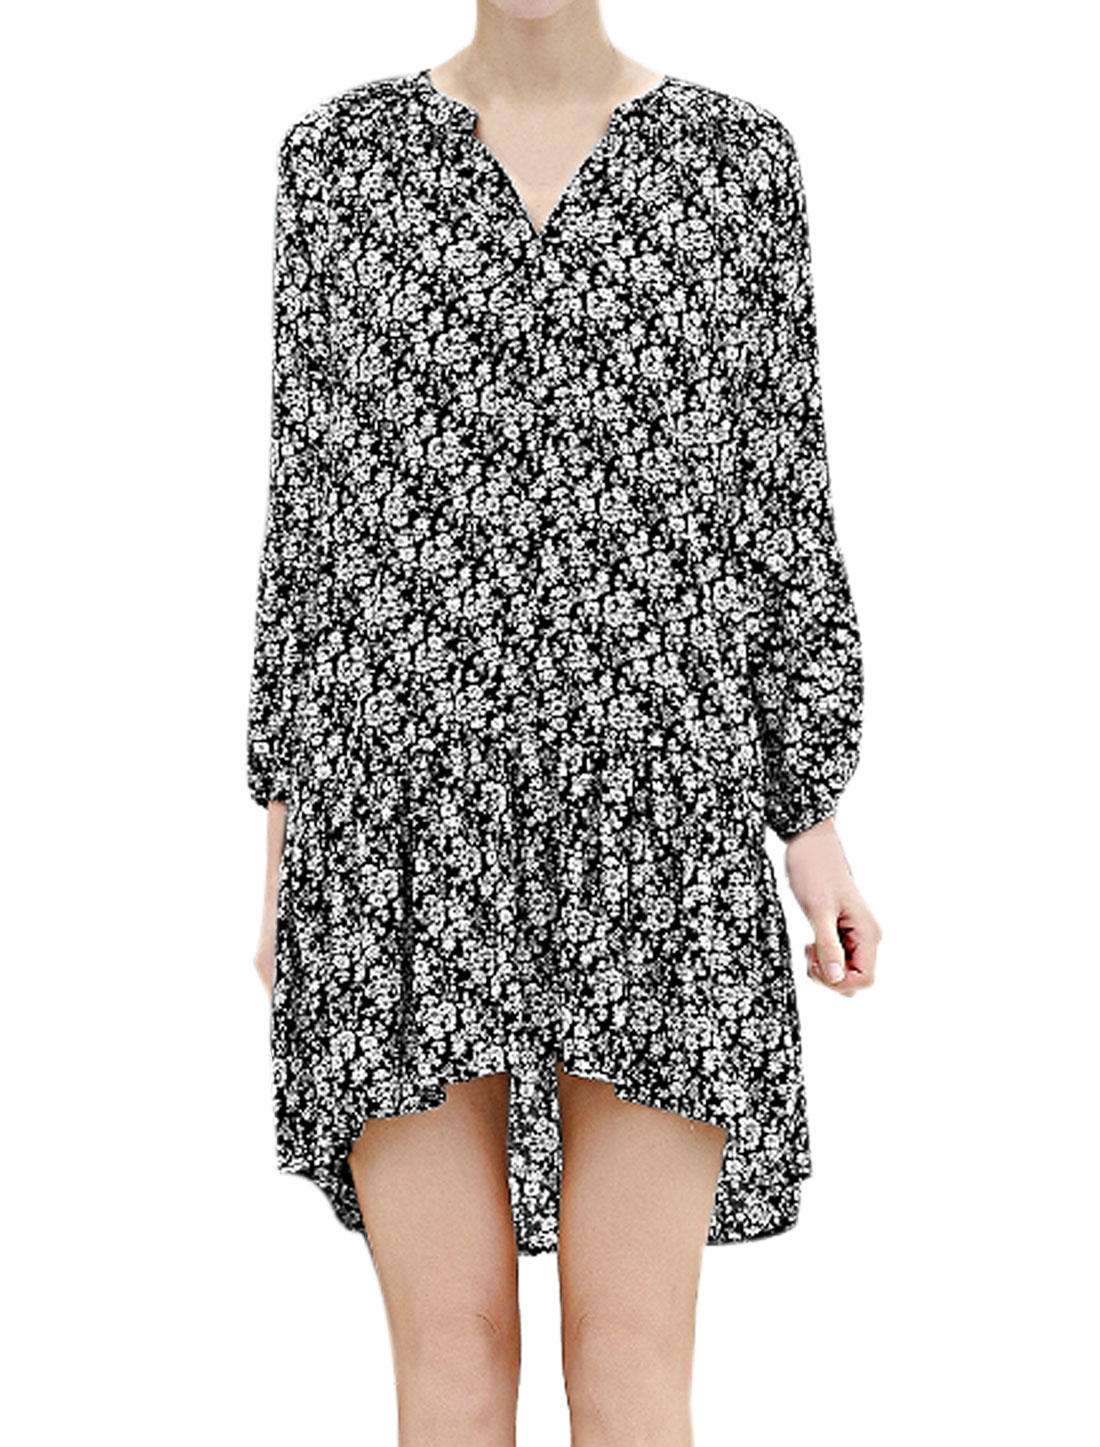 Women Flouncing High Low Hem Loose Floral Tunic Dress Black L